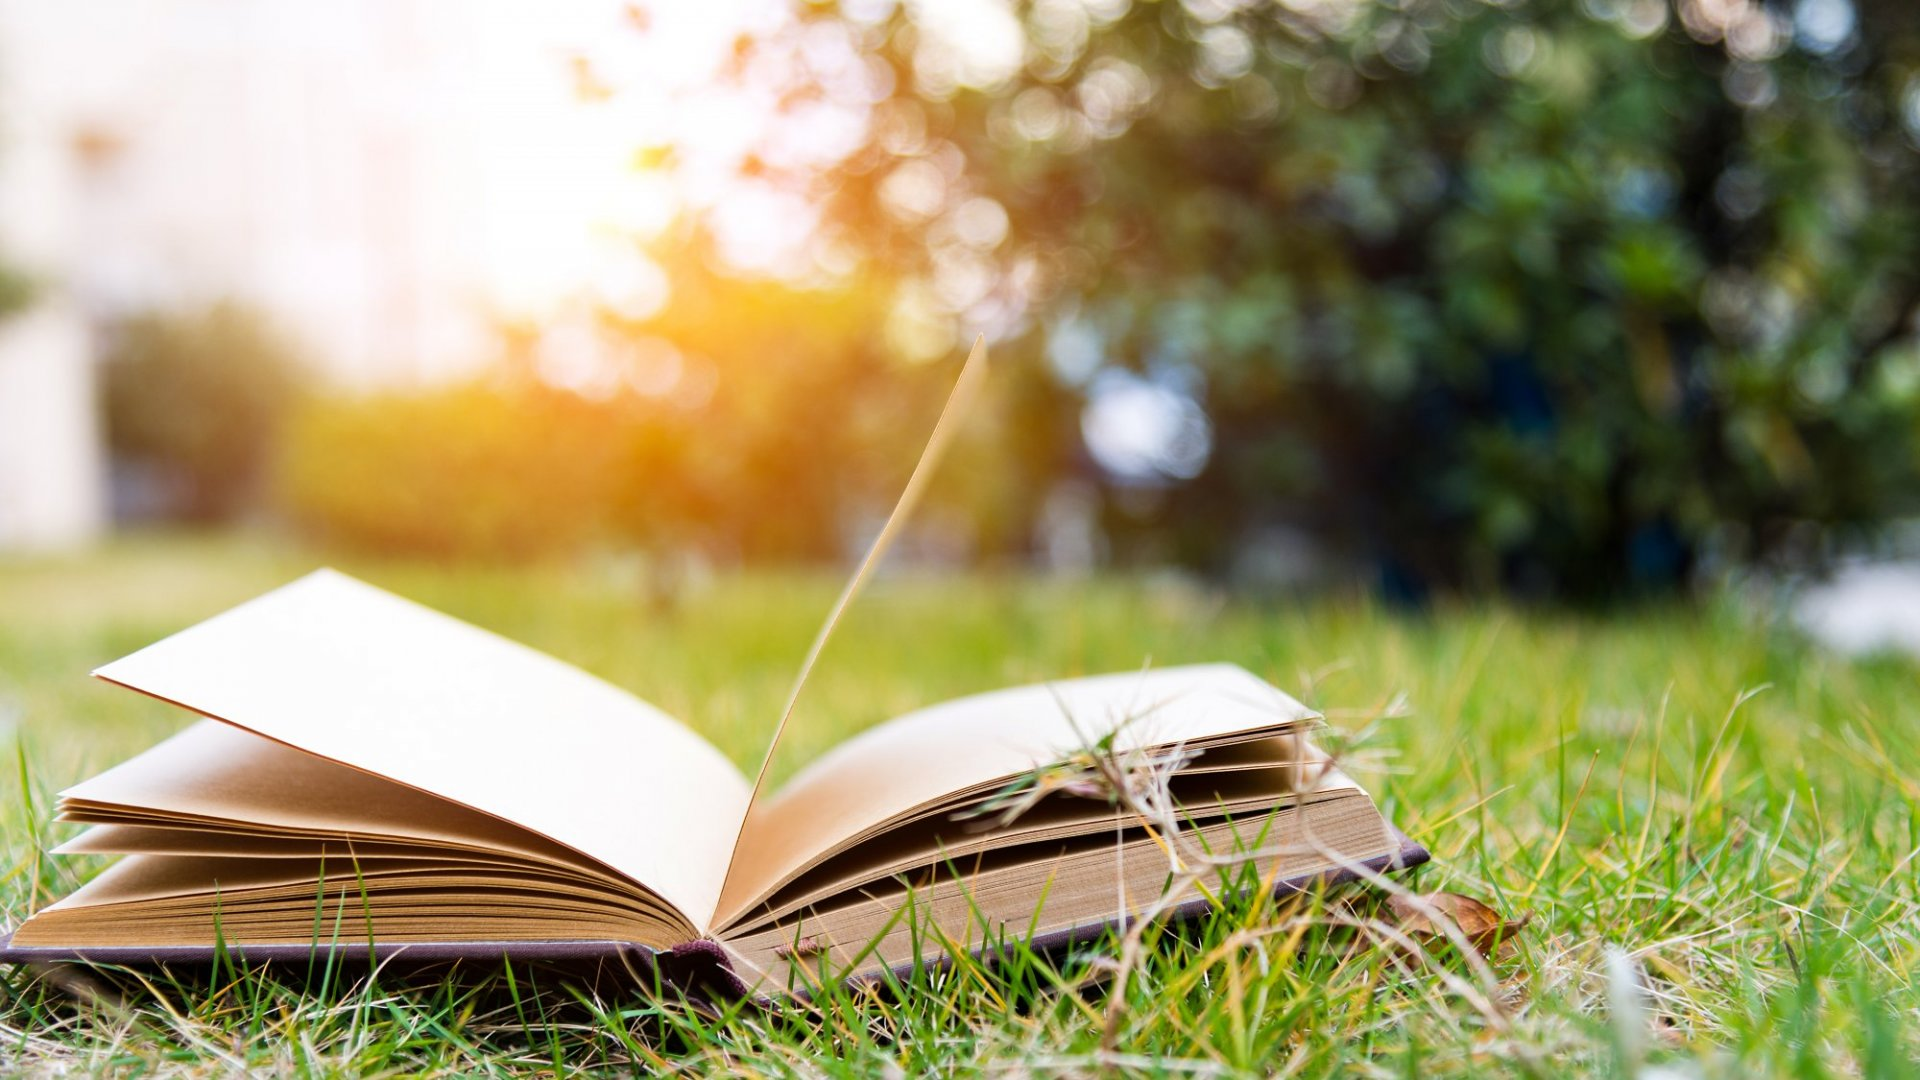 14 Books to Fuel Growth During the Dog Days of Summer